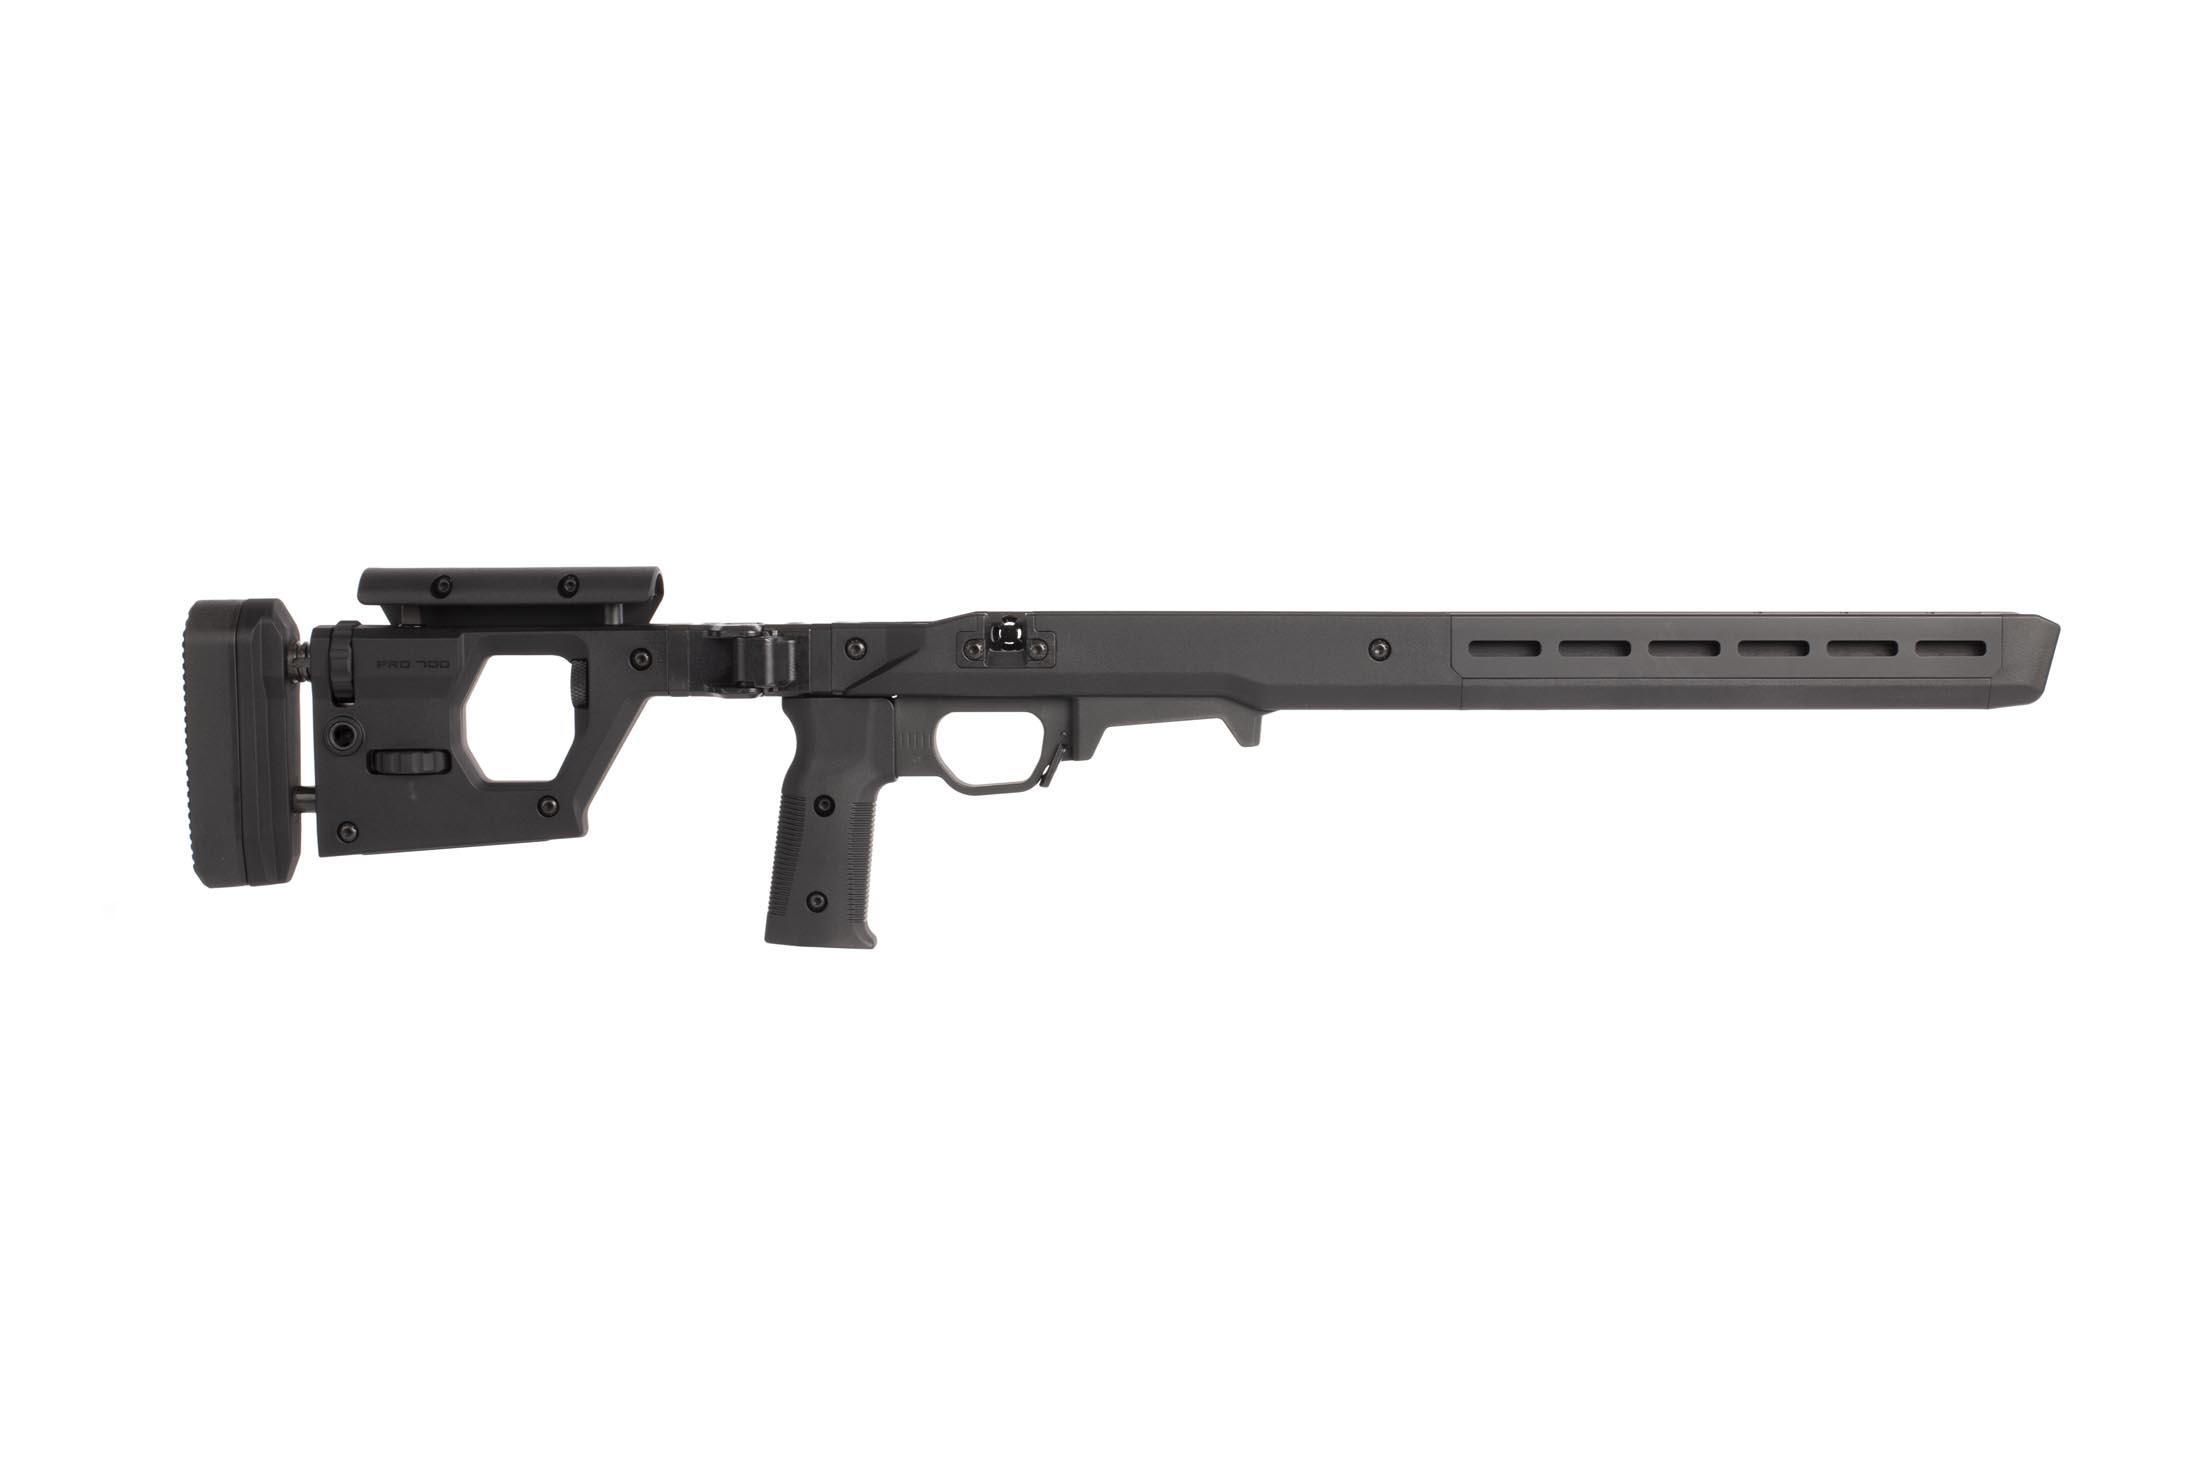 Magpul black PRO 700 rifle chassis features adjustable comb and length of pull on the folding stock.